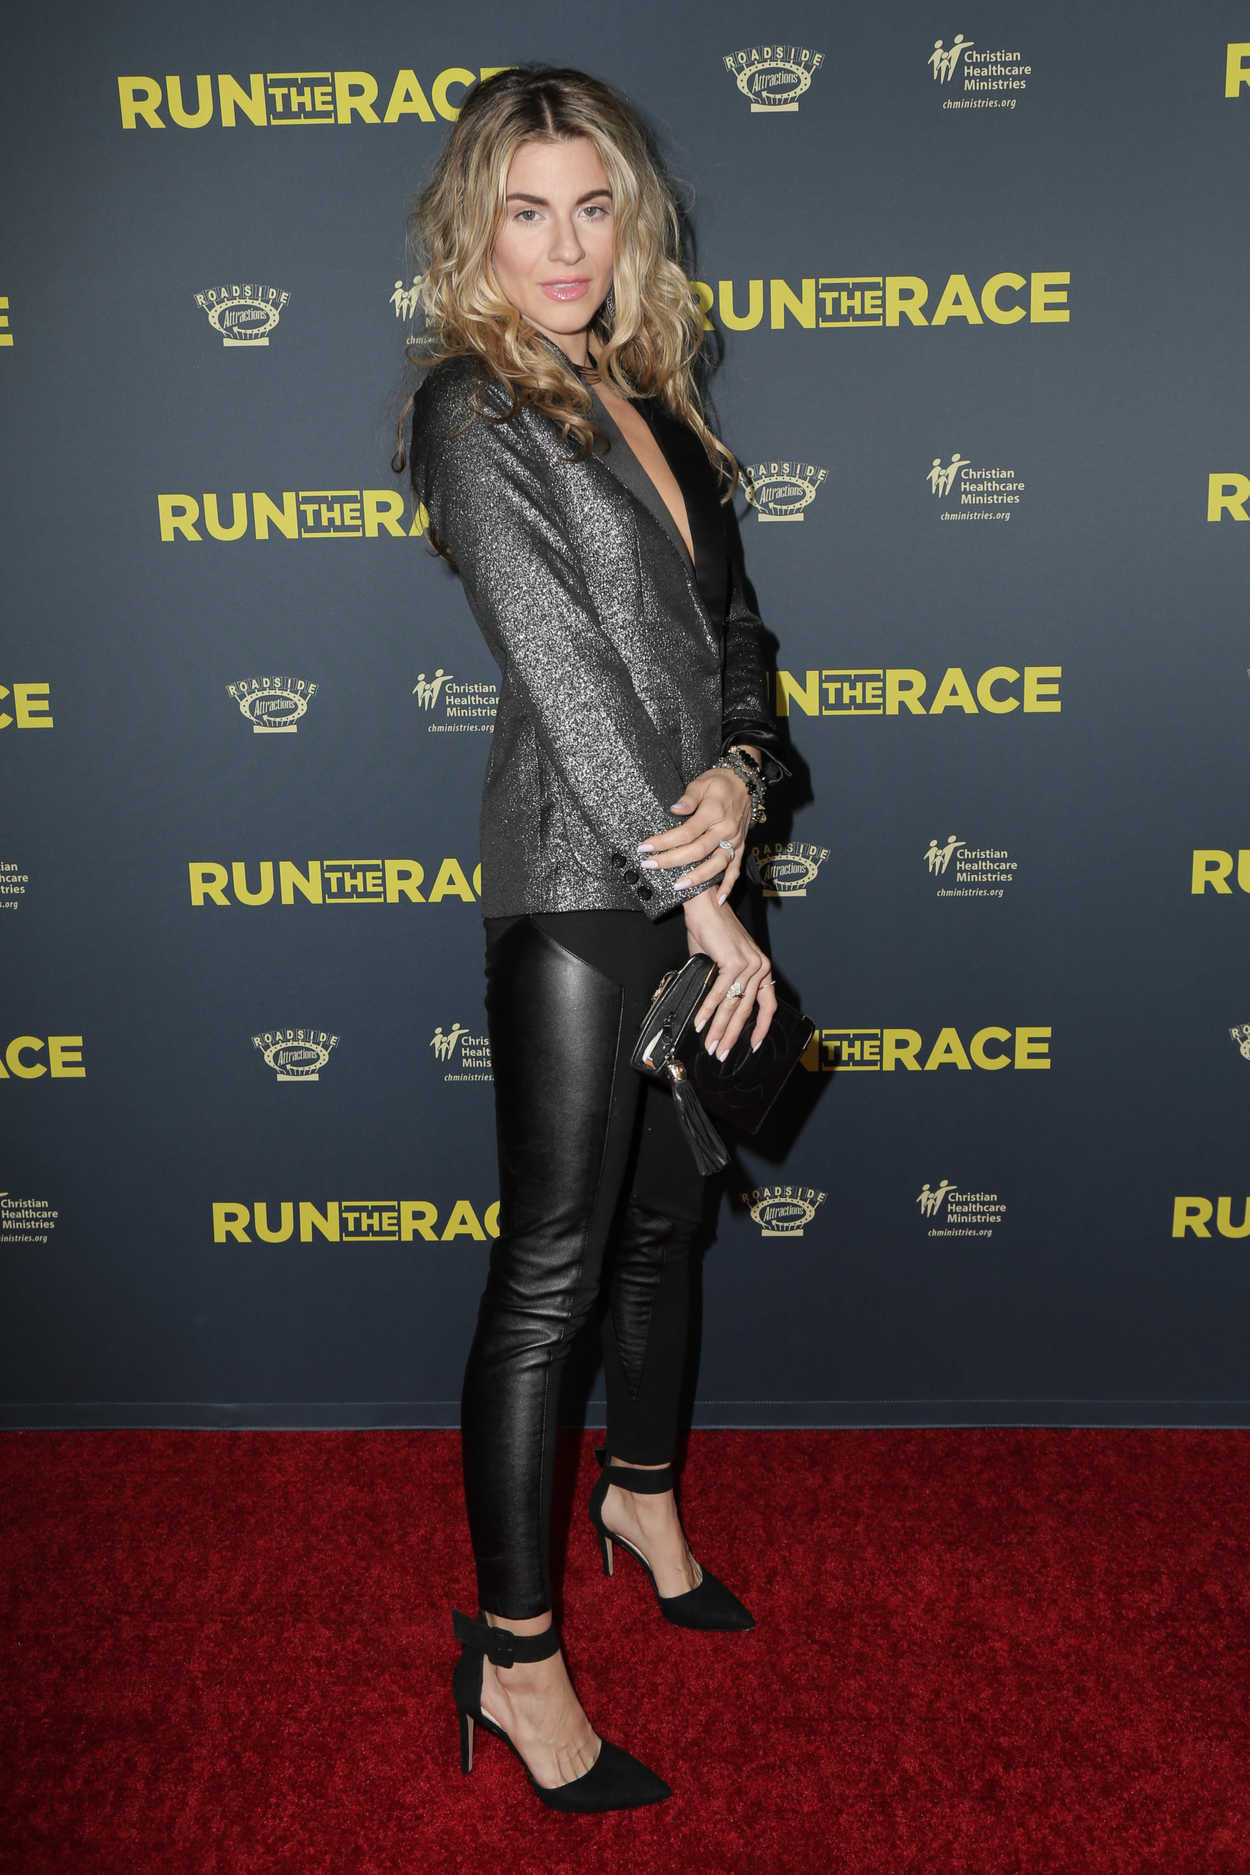 Rachel McCord Attends Run The Race Premiere in Hollywood ... Romantic